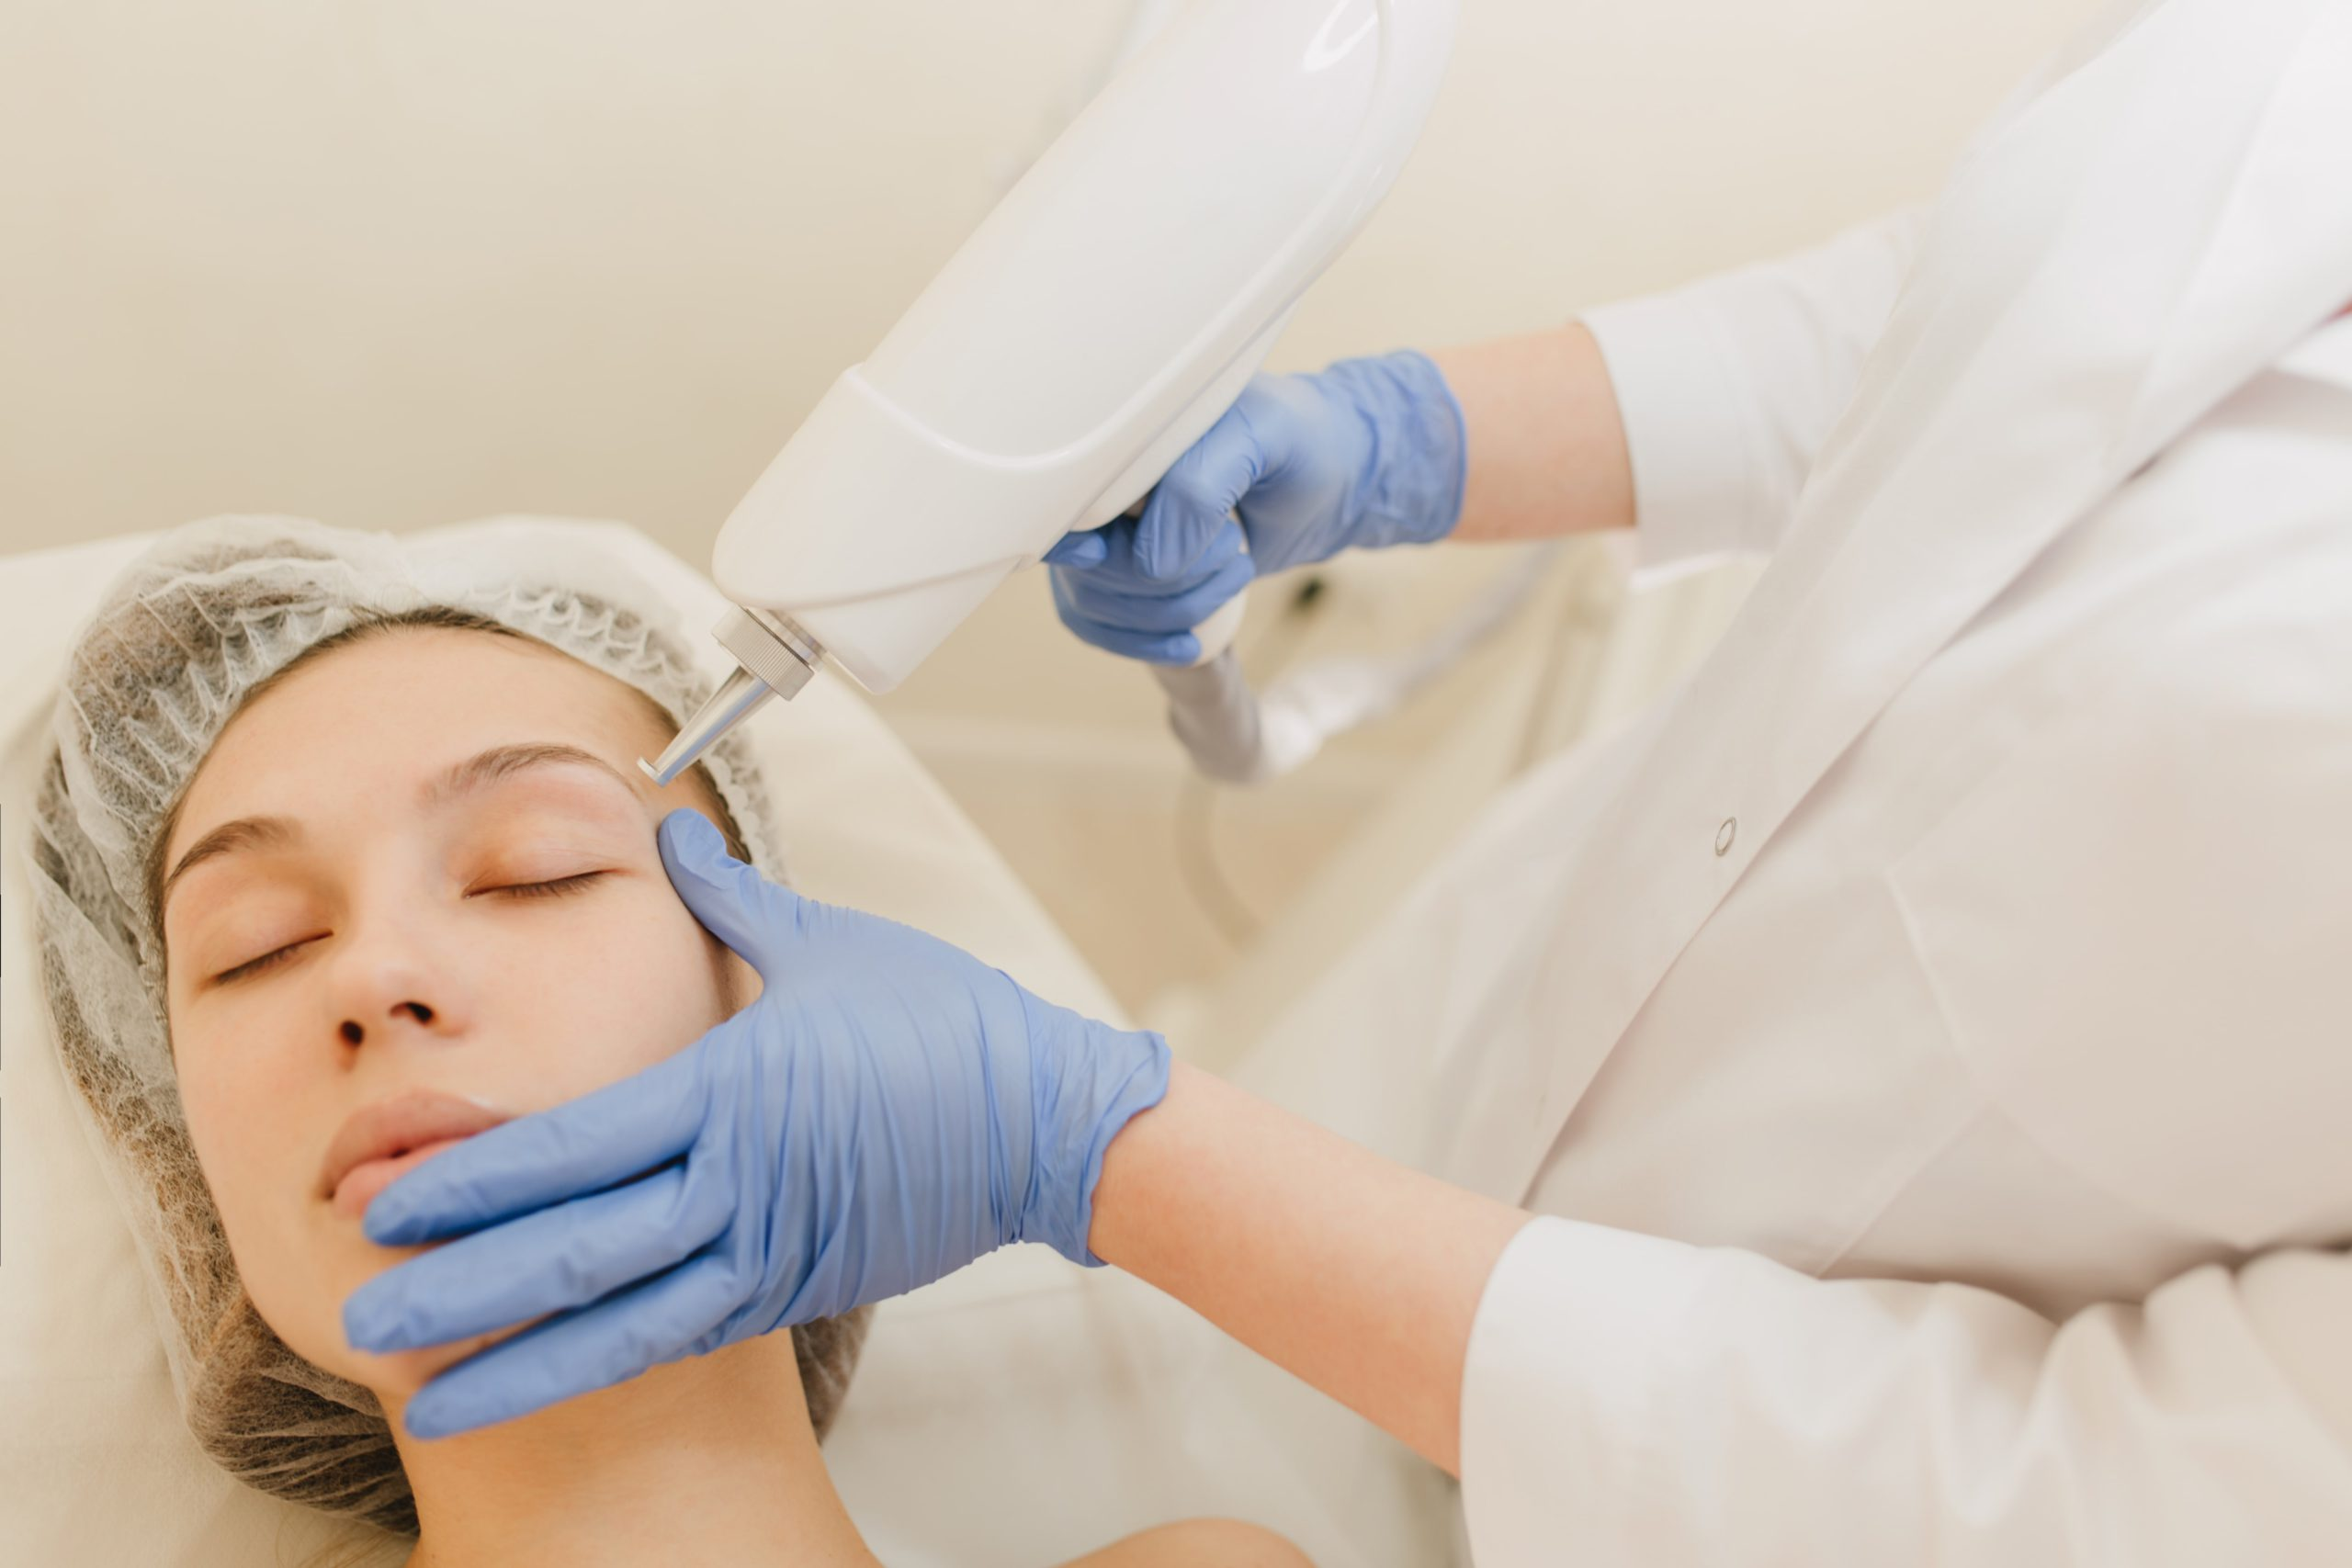 Is Dermatology Covered by Medicare